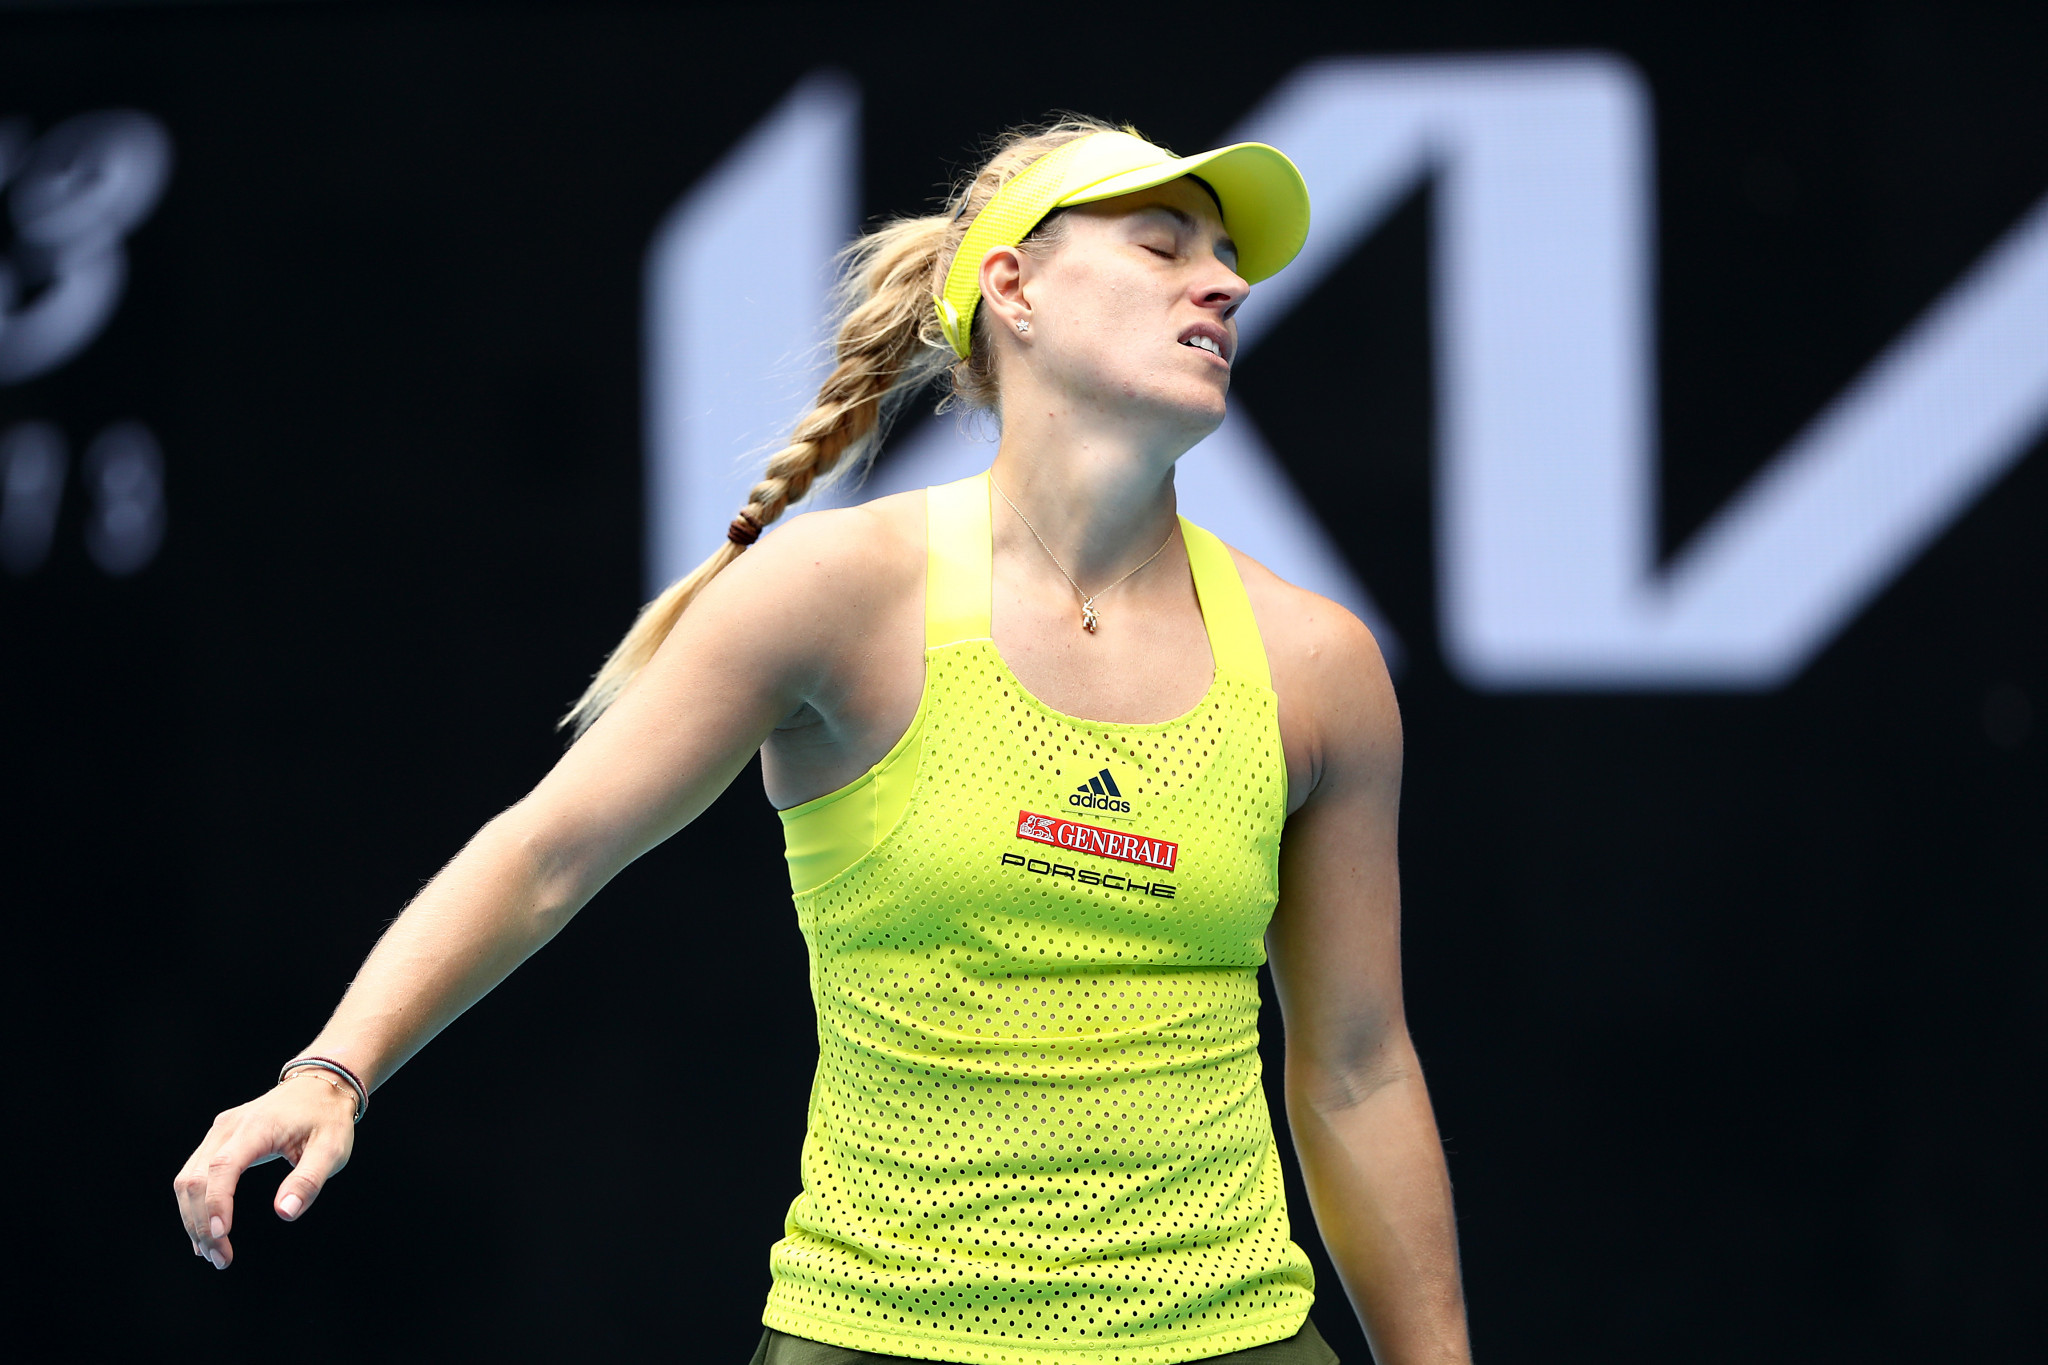 Angelique Kerber suffered a crushing first-round loss to Bernarda Pera ©Getty Images